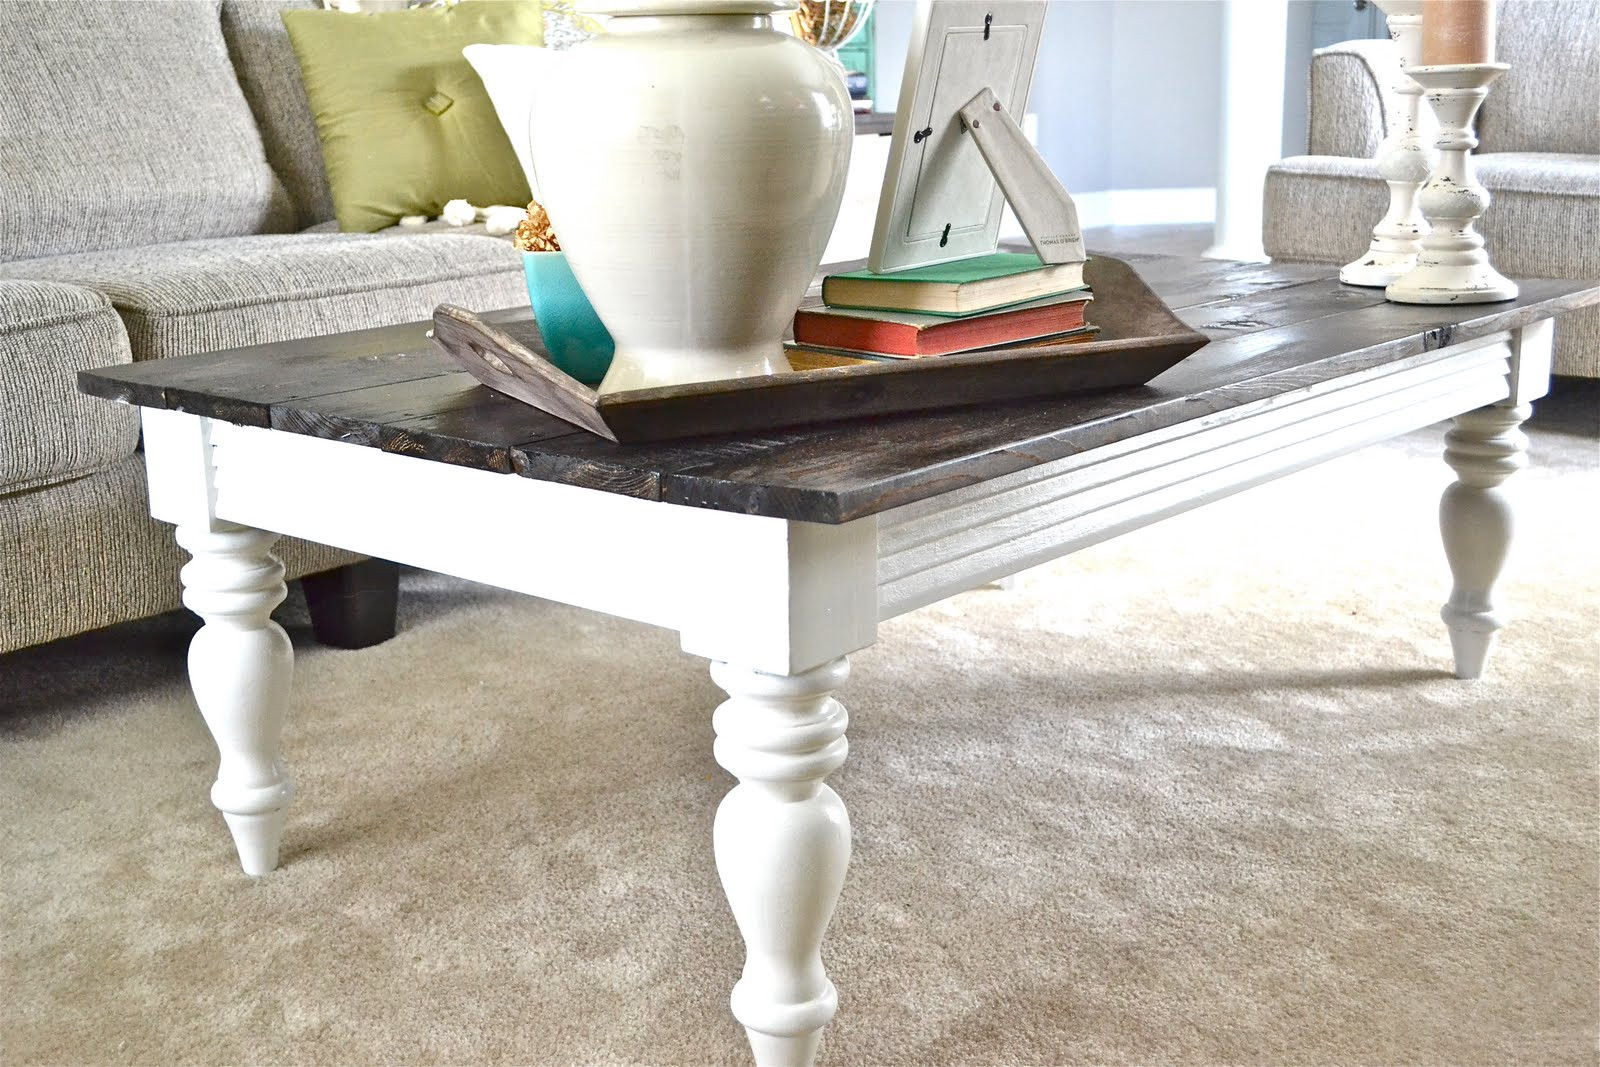 Best ideas about DIY Coffee Table Pinterest . Save or Pin Liz Marie Warm Wood & White Now.